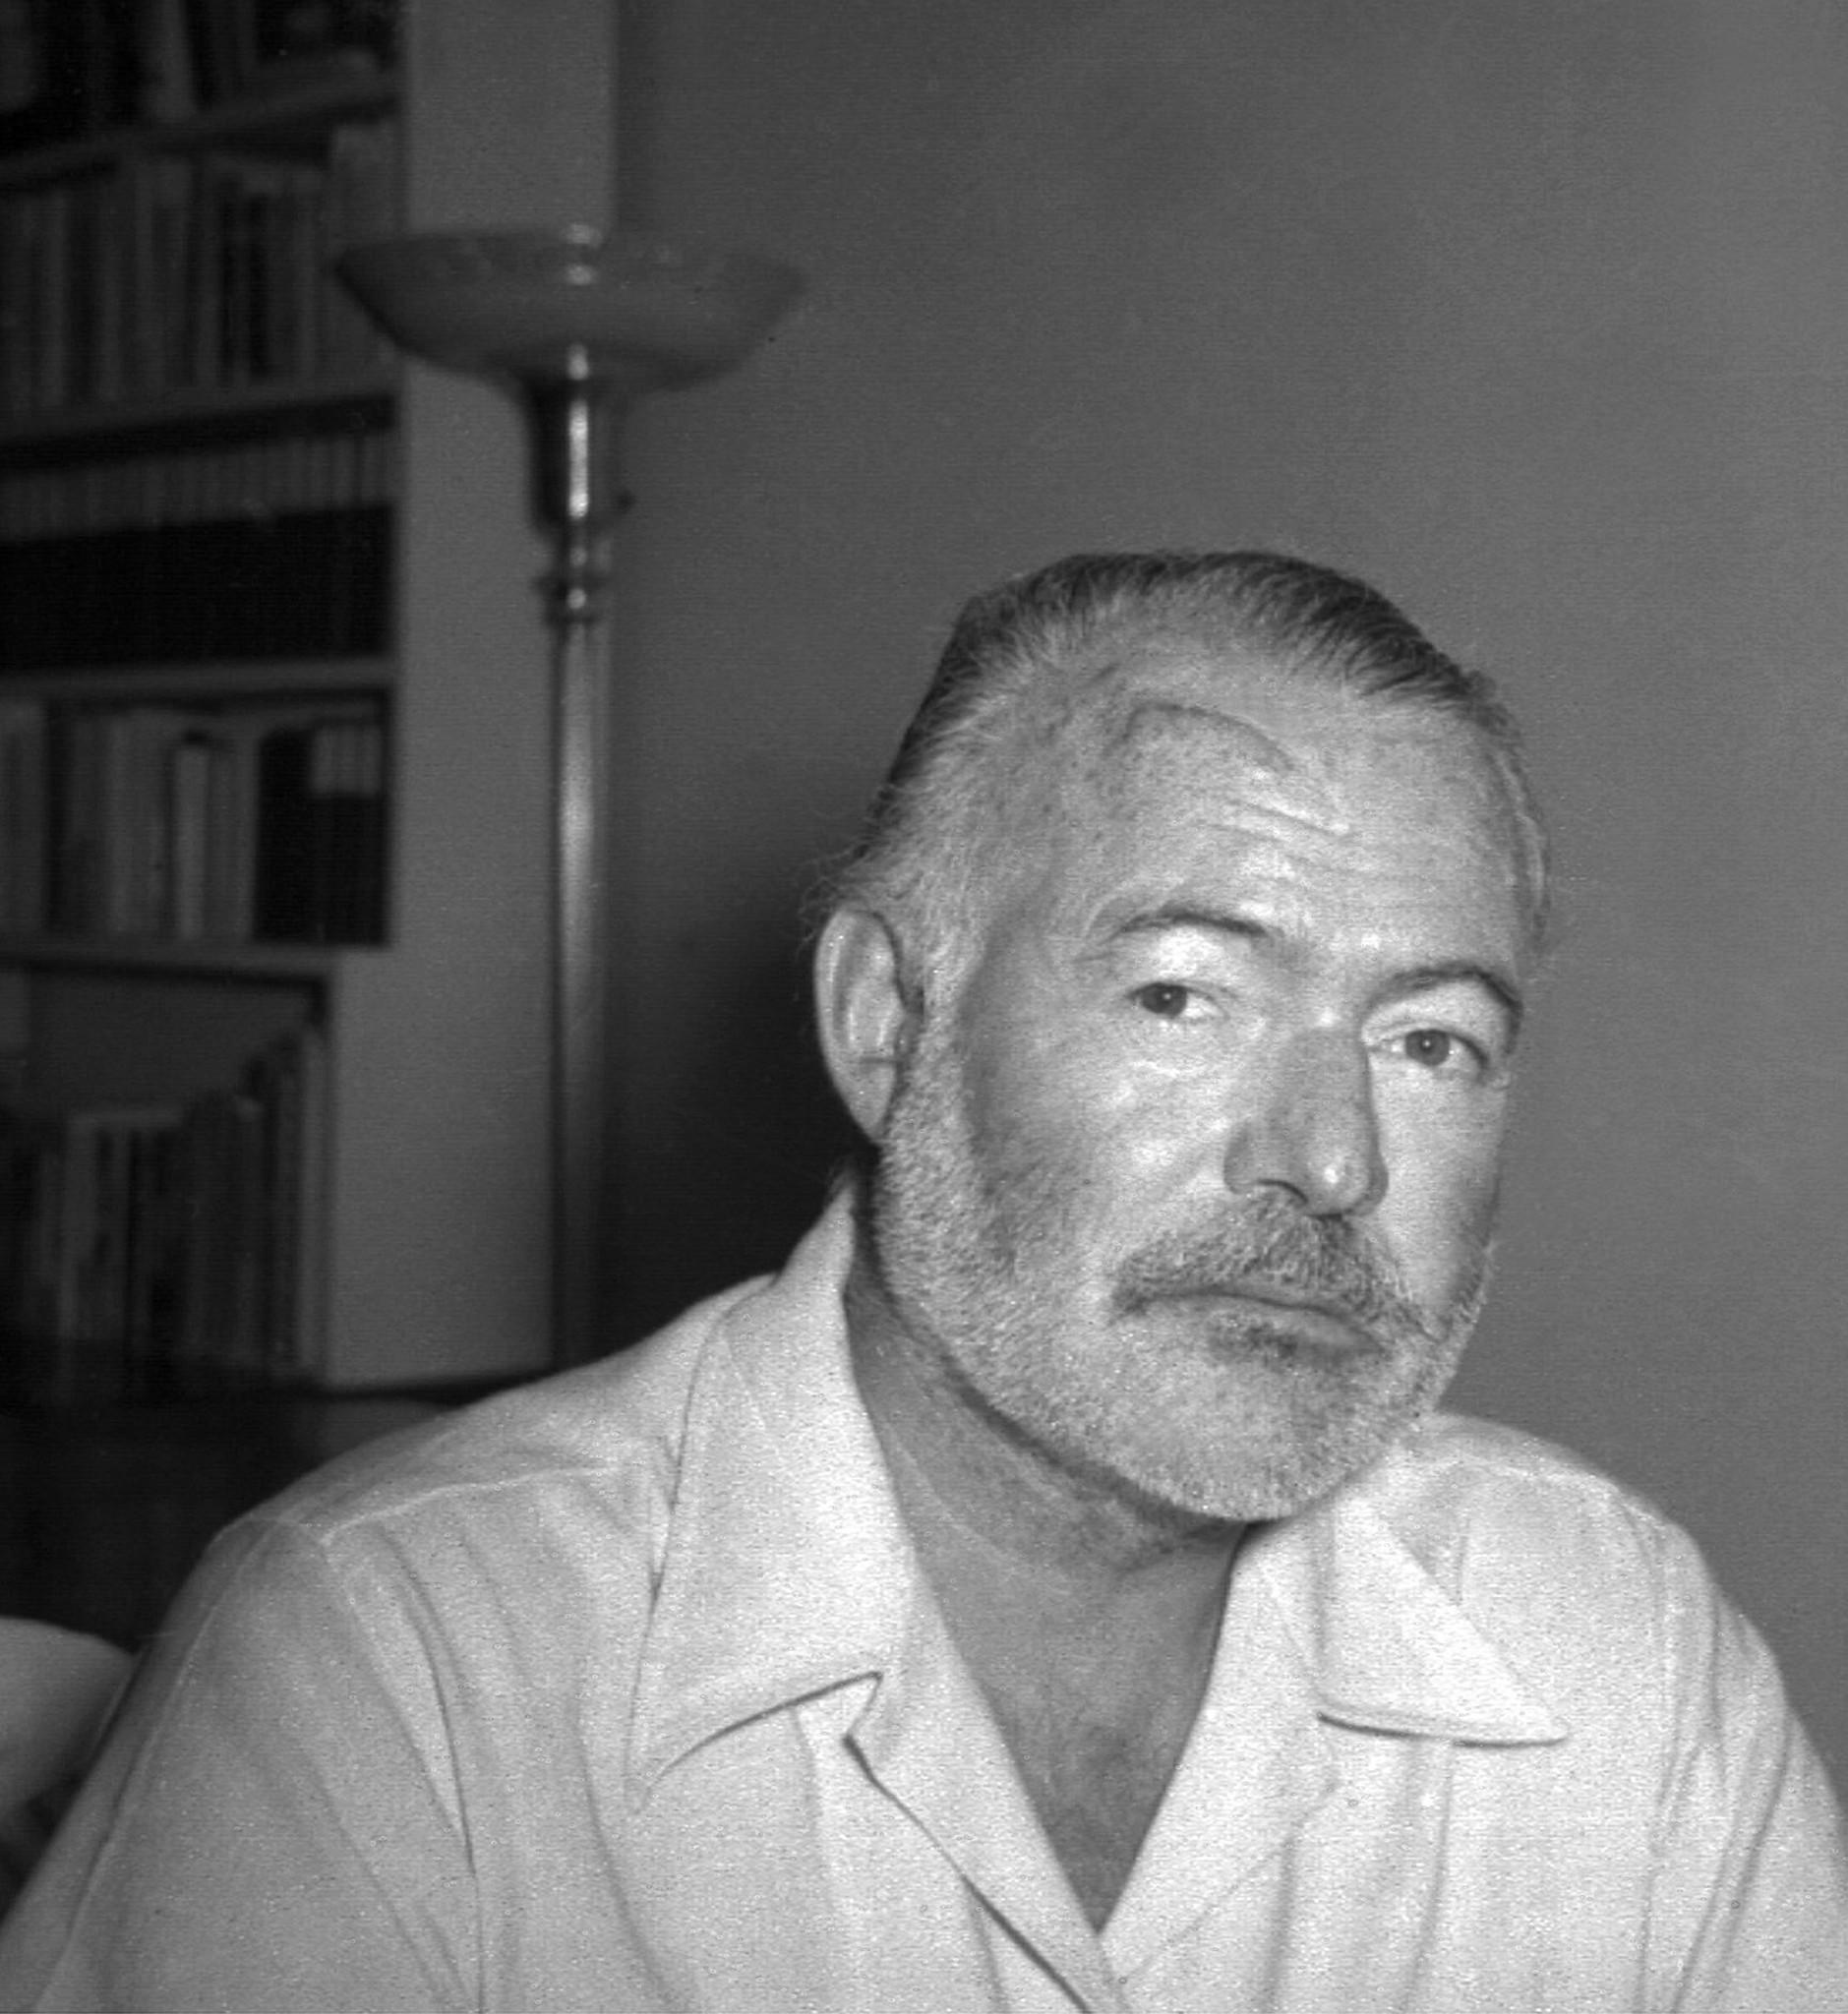 Ernest Hemingway at his Cuban country home near Havana in 1950. Hemingway wrote a letter, now up for auction, to film star Marlene Dietrich from the home in 1955.